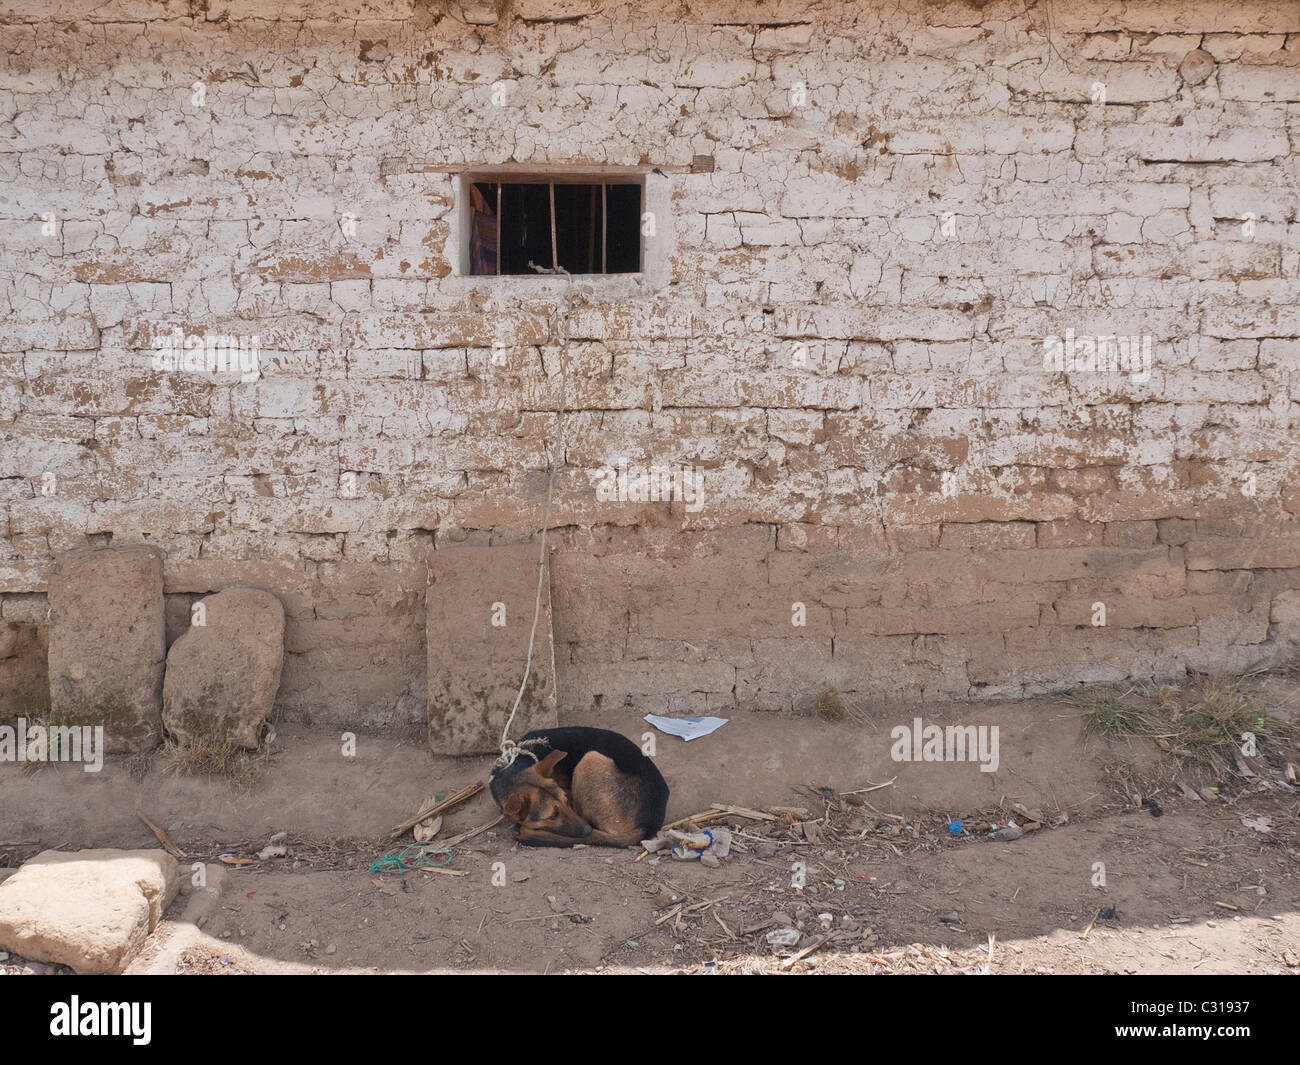 The pet dog of a family sleeps on the ground in front of an adobe house while being tied up in Totonicapan, Guatemala. - Stock Image